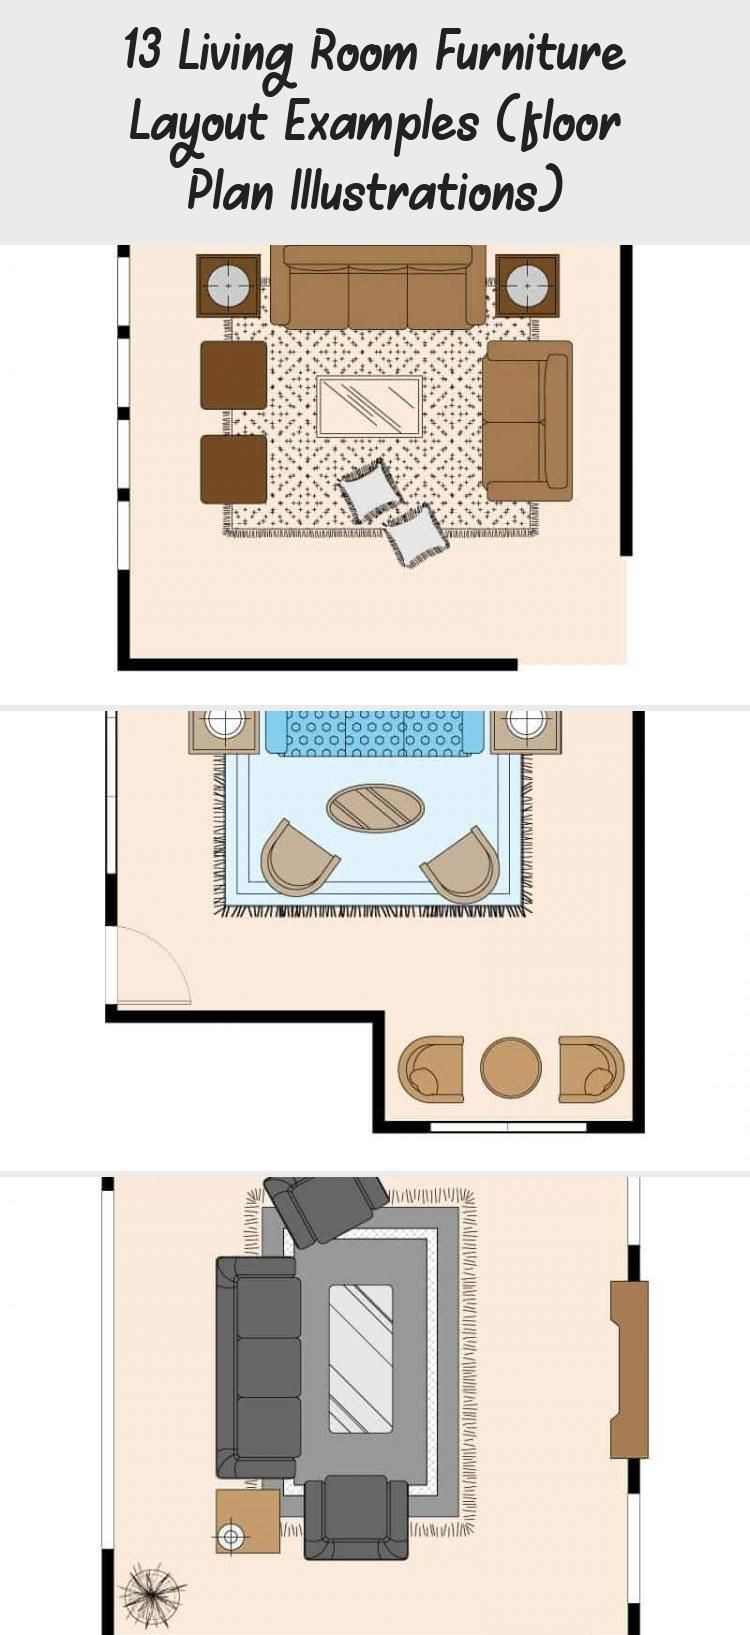 13 Living Room Furniture Layout Examples Floor Plan Illustrations Living Room Furniture Layout Living Room Floor Plans Living Room Furniture